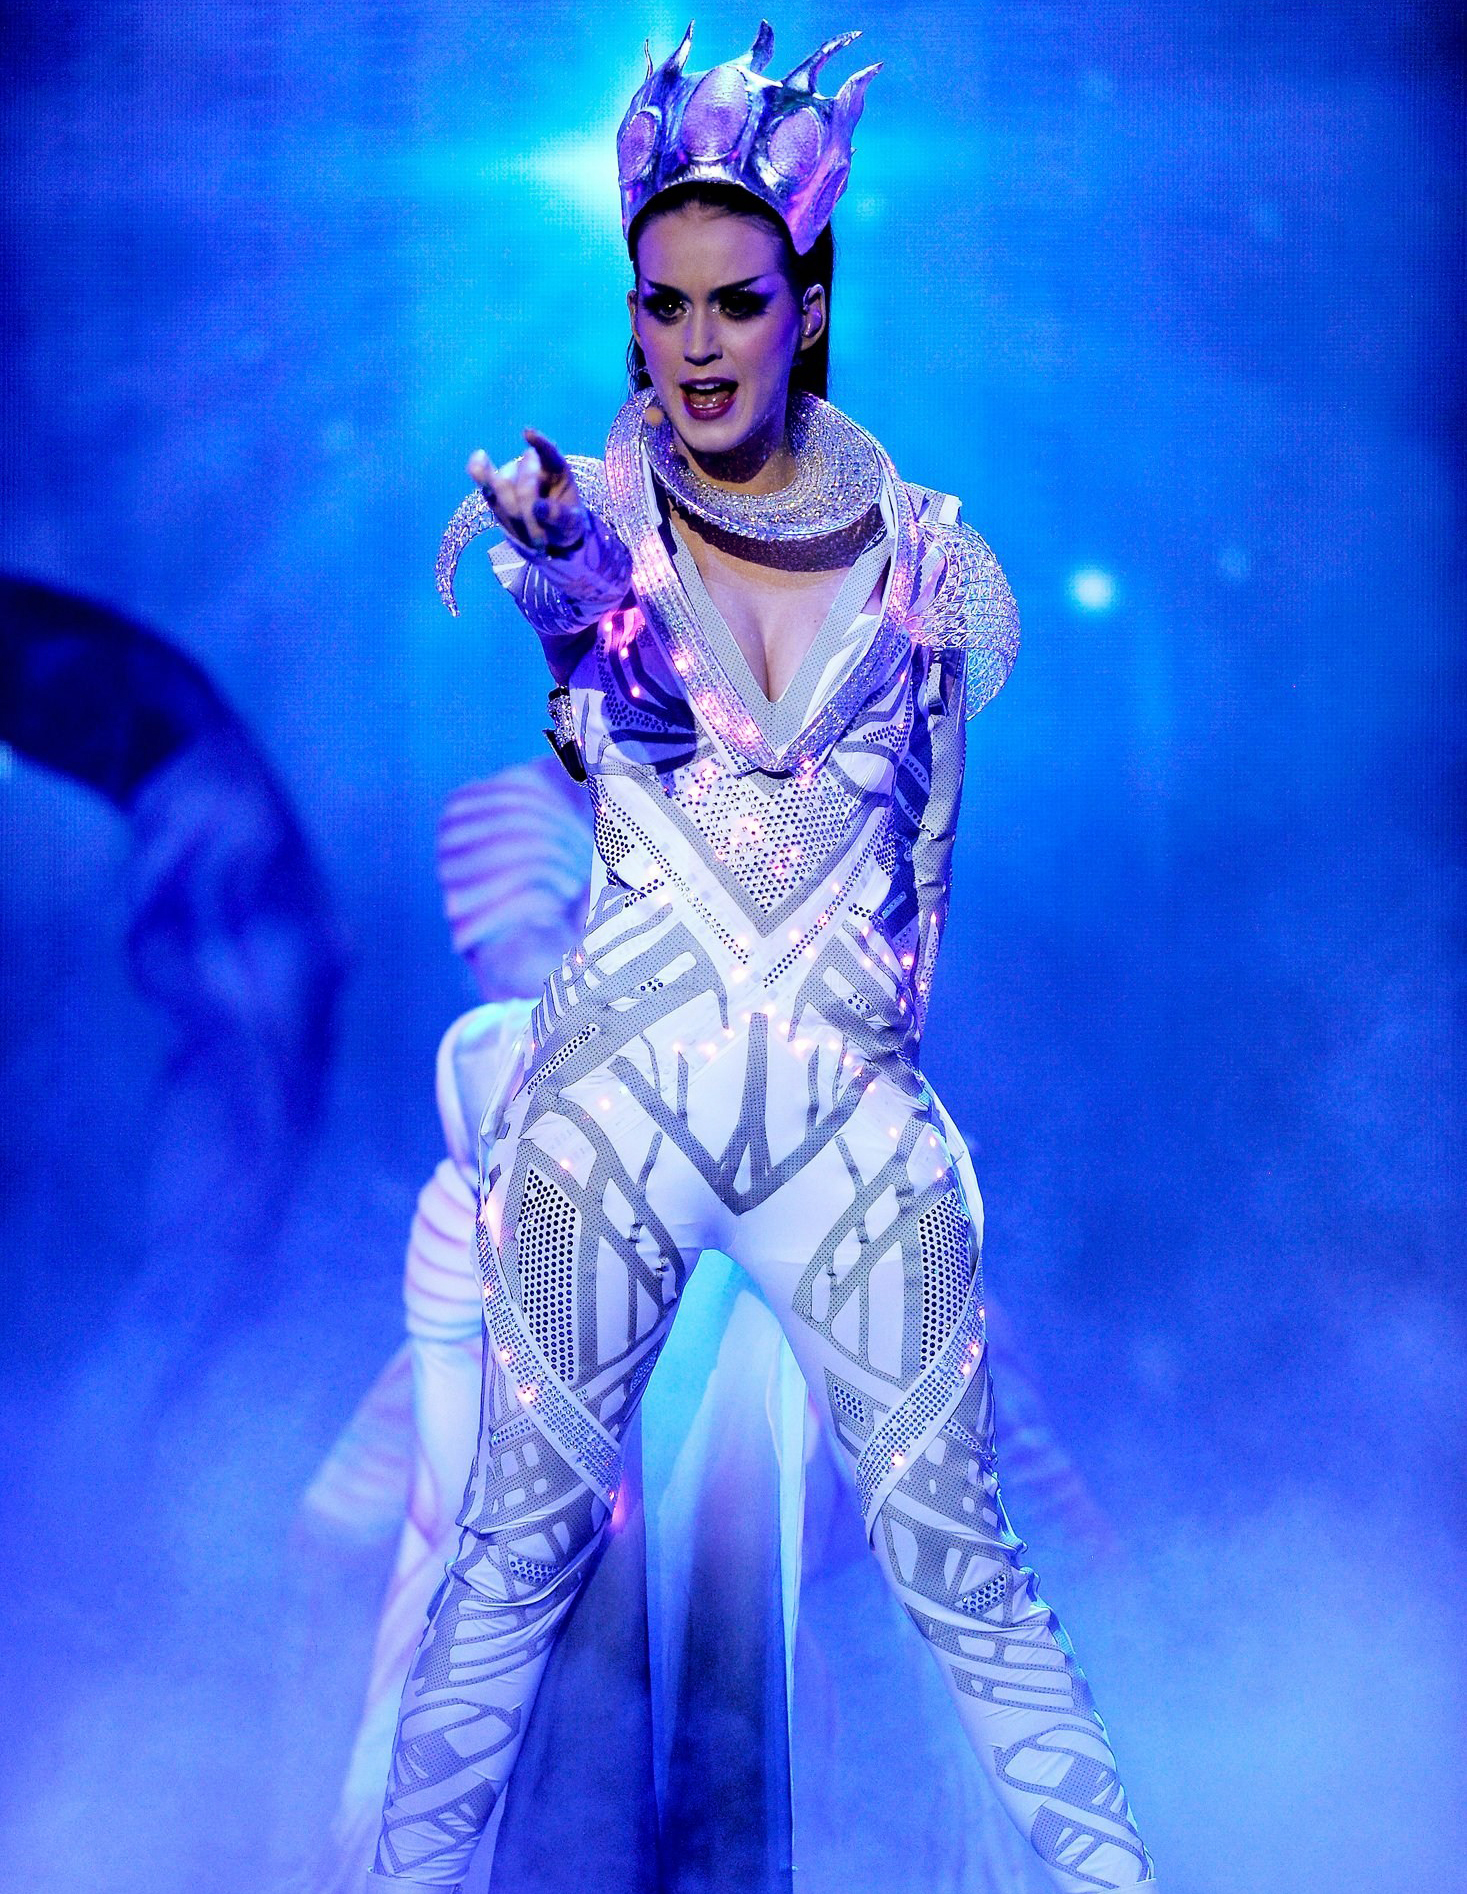 American singer Katy Perry performs E.T. on April 21, 2011, on the stage of American Idol show. She wears a catsuit from english brand CuteCircuit, whose interactive LEDs chatter on Swarovski crystals.